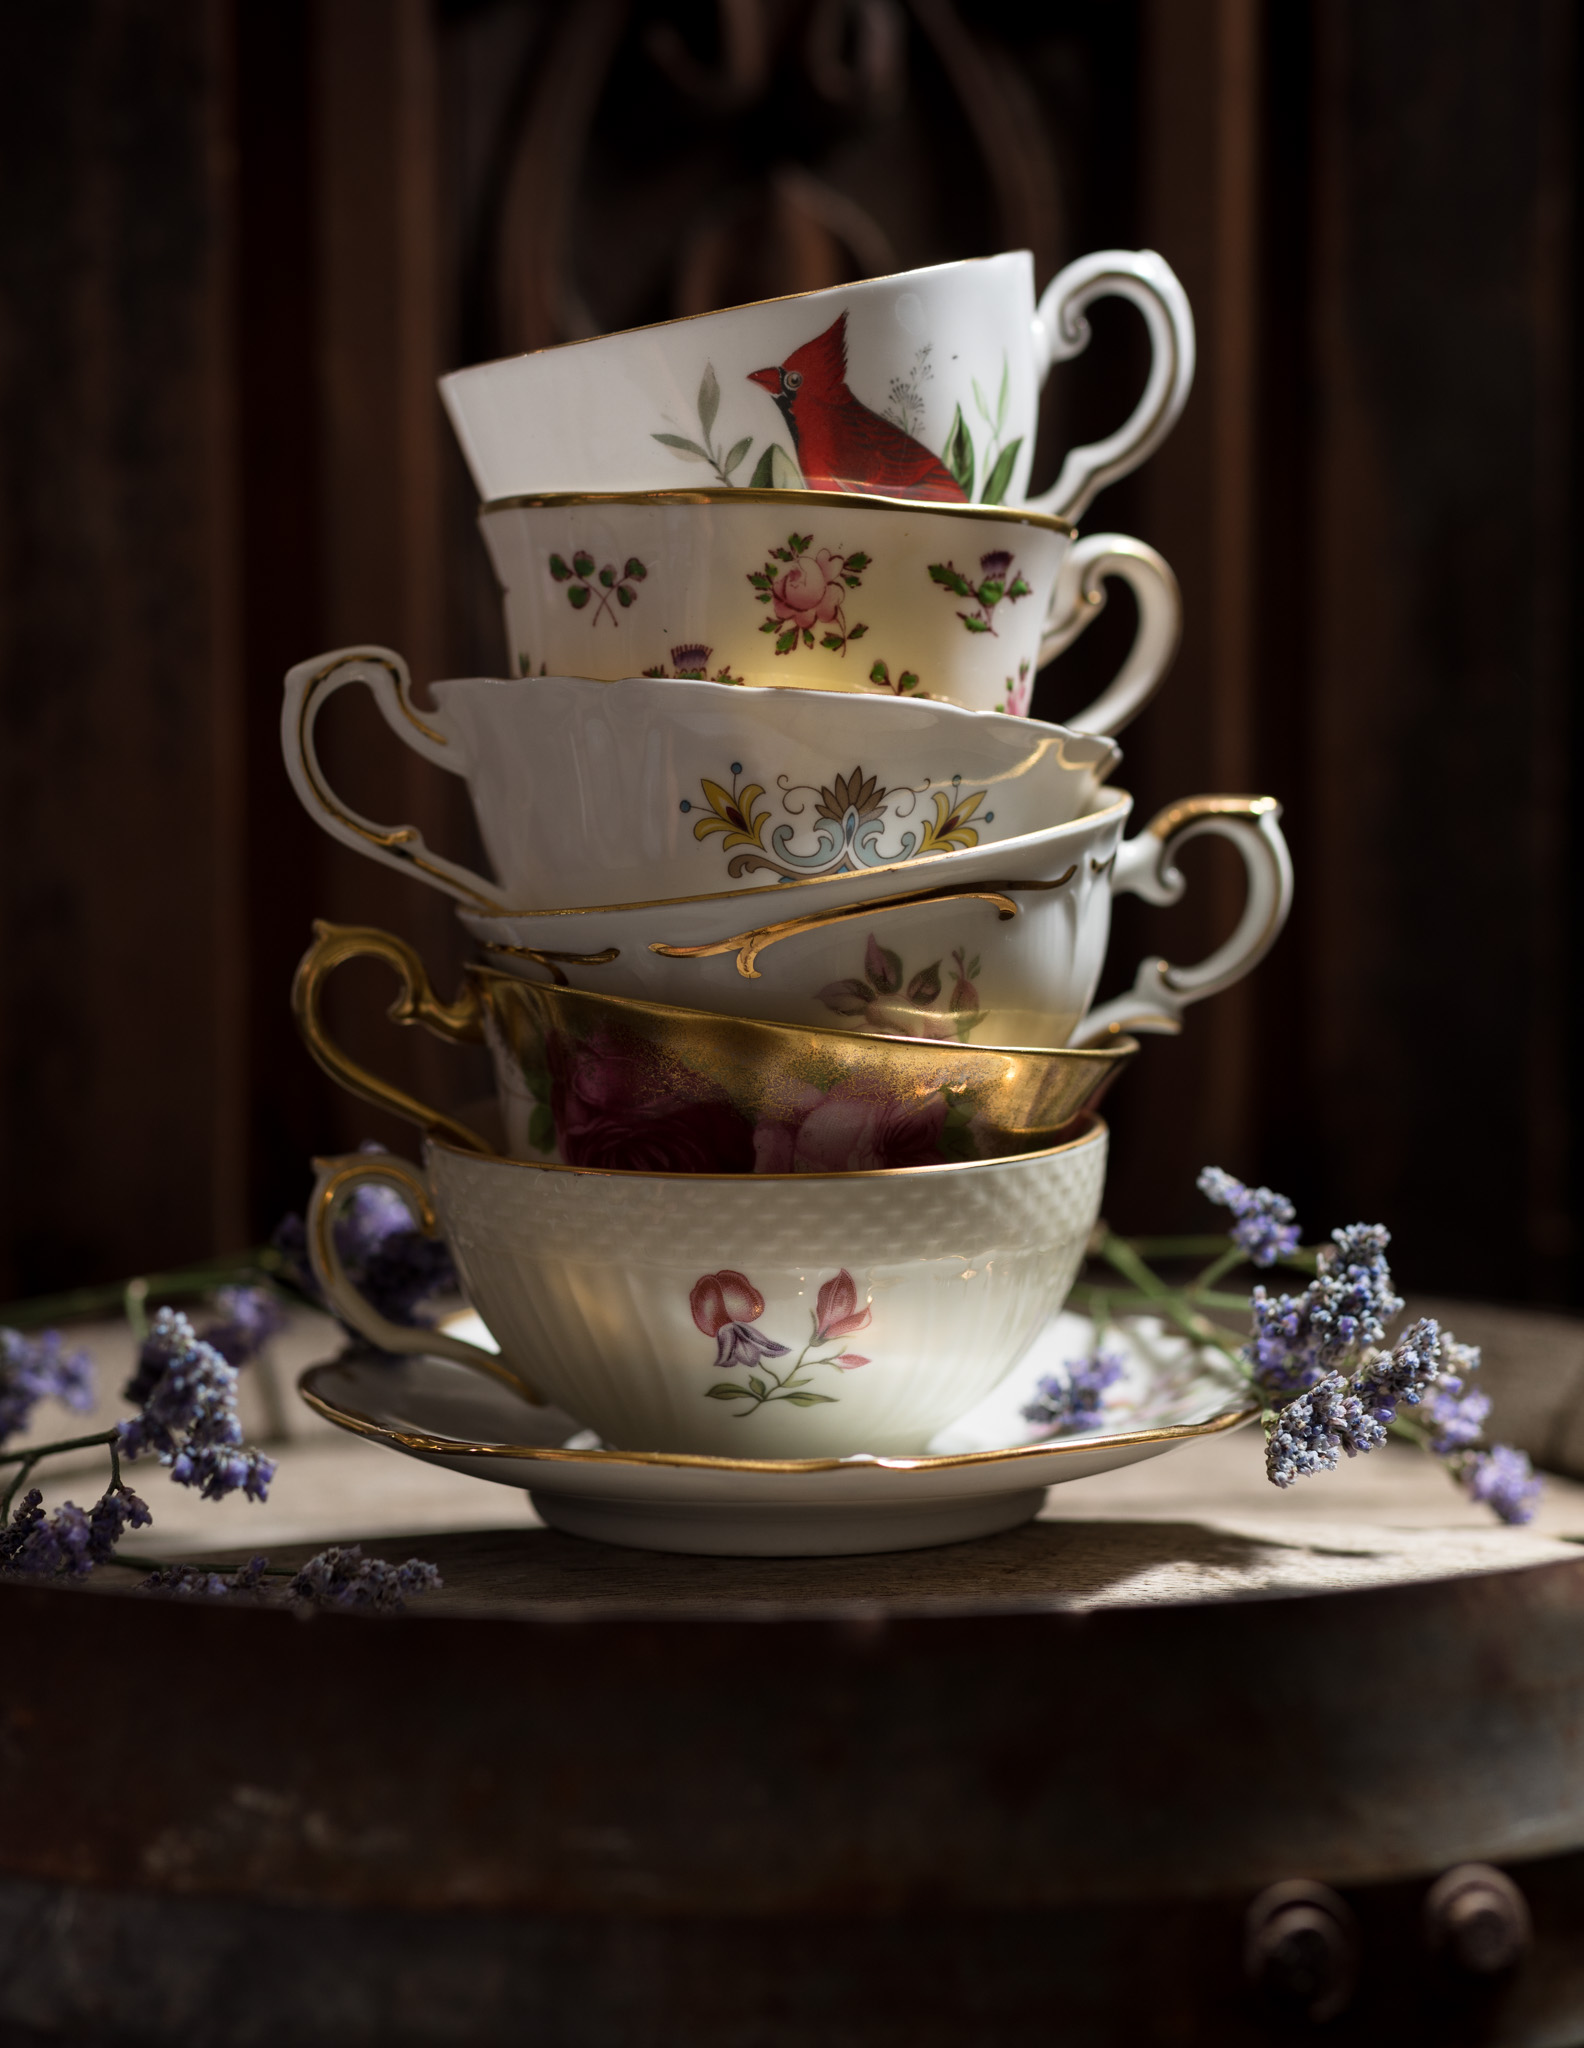 tea-cups-jason-risner-photography